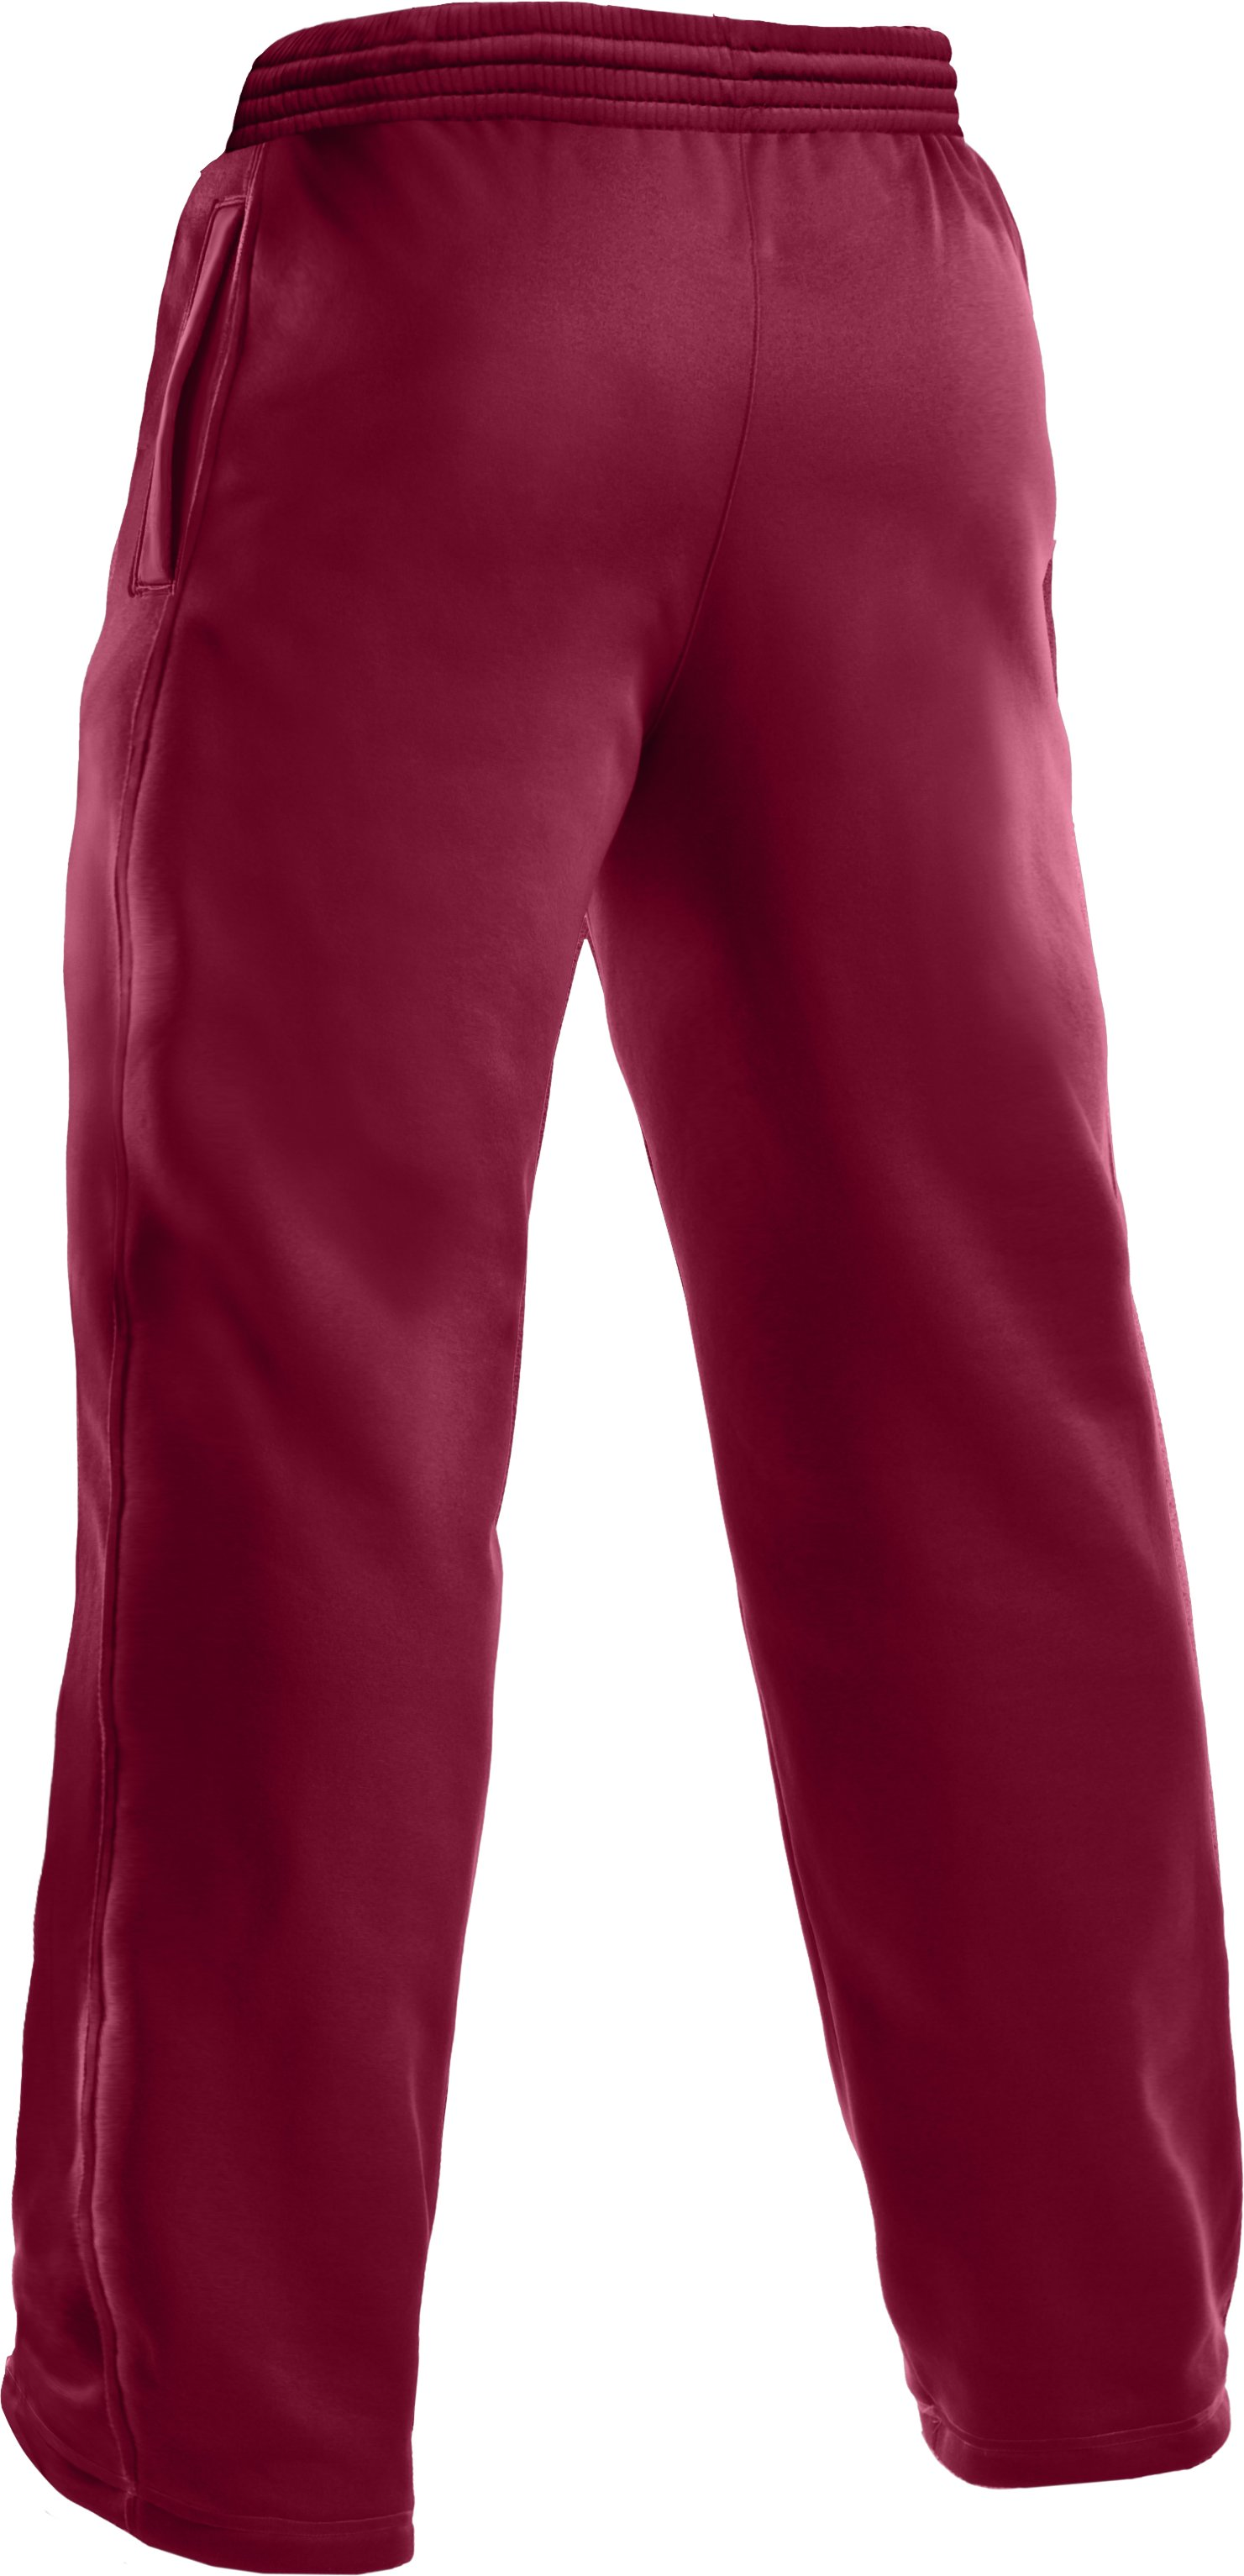 Men's Armour Fleece® Team Pants, Maroon,